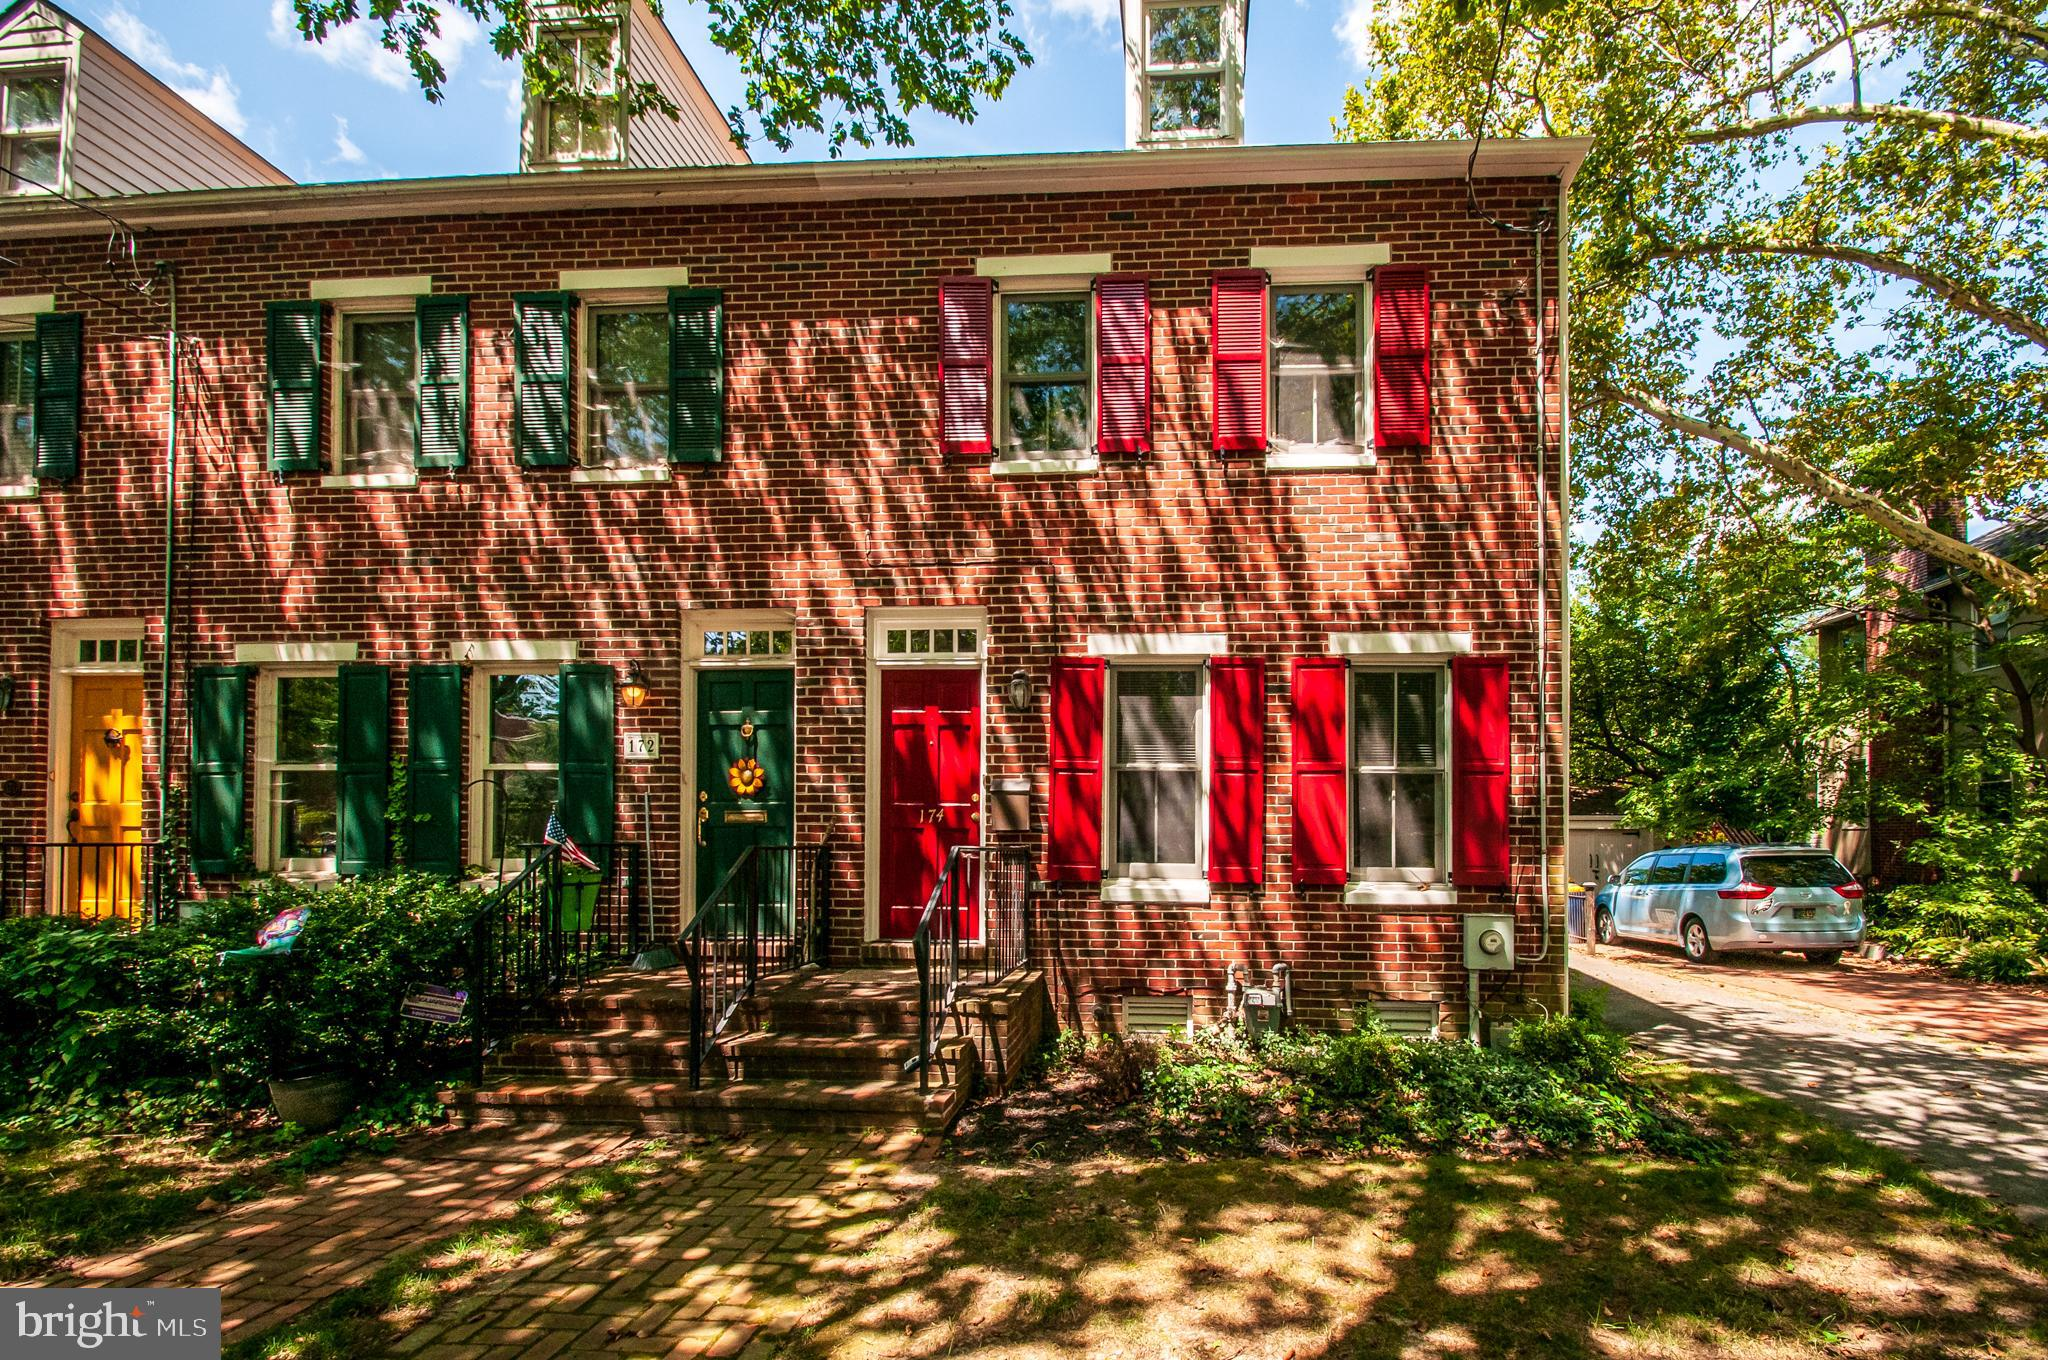 A newer home in the  historic district of Old New Castle.   This three story, 4 bedroom, 3.5 bath home has plenty to offer.  The first floor has a living room, dining, kitchen, family, powder room, and a first floor laundry.  There is a fenced back yard and off-street parking.